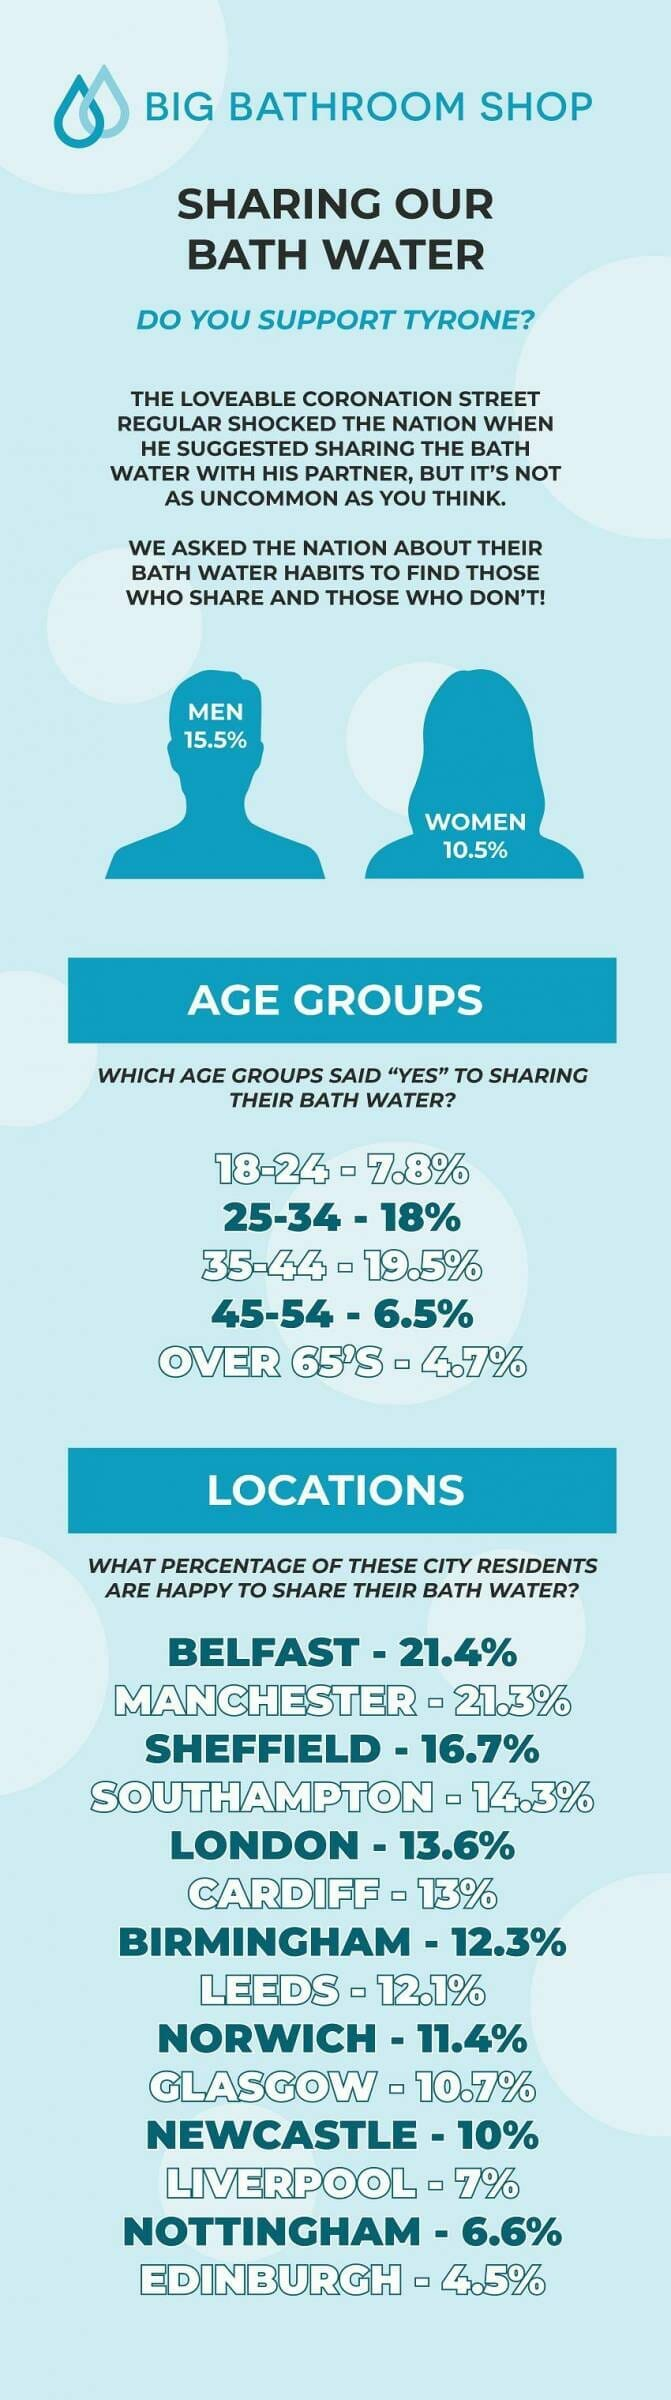 Bath water sharing infographic